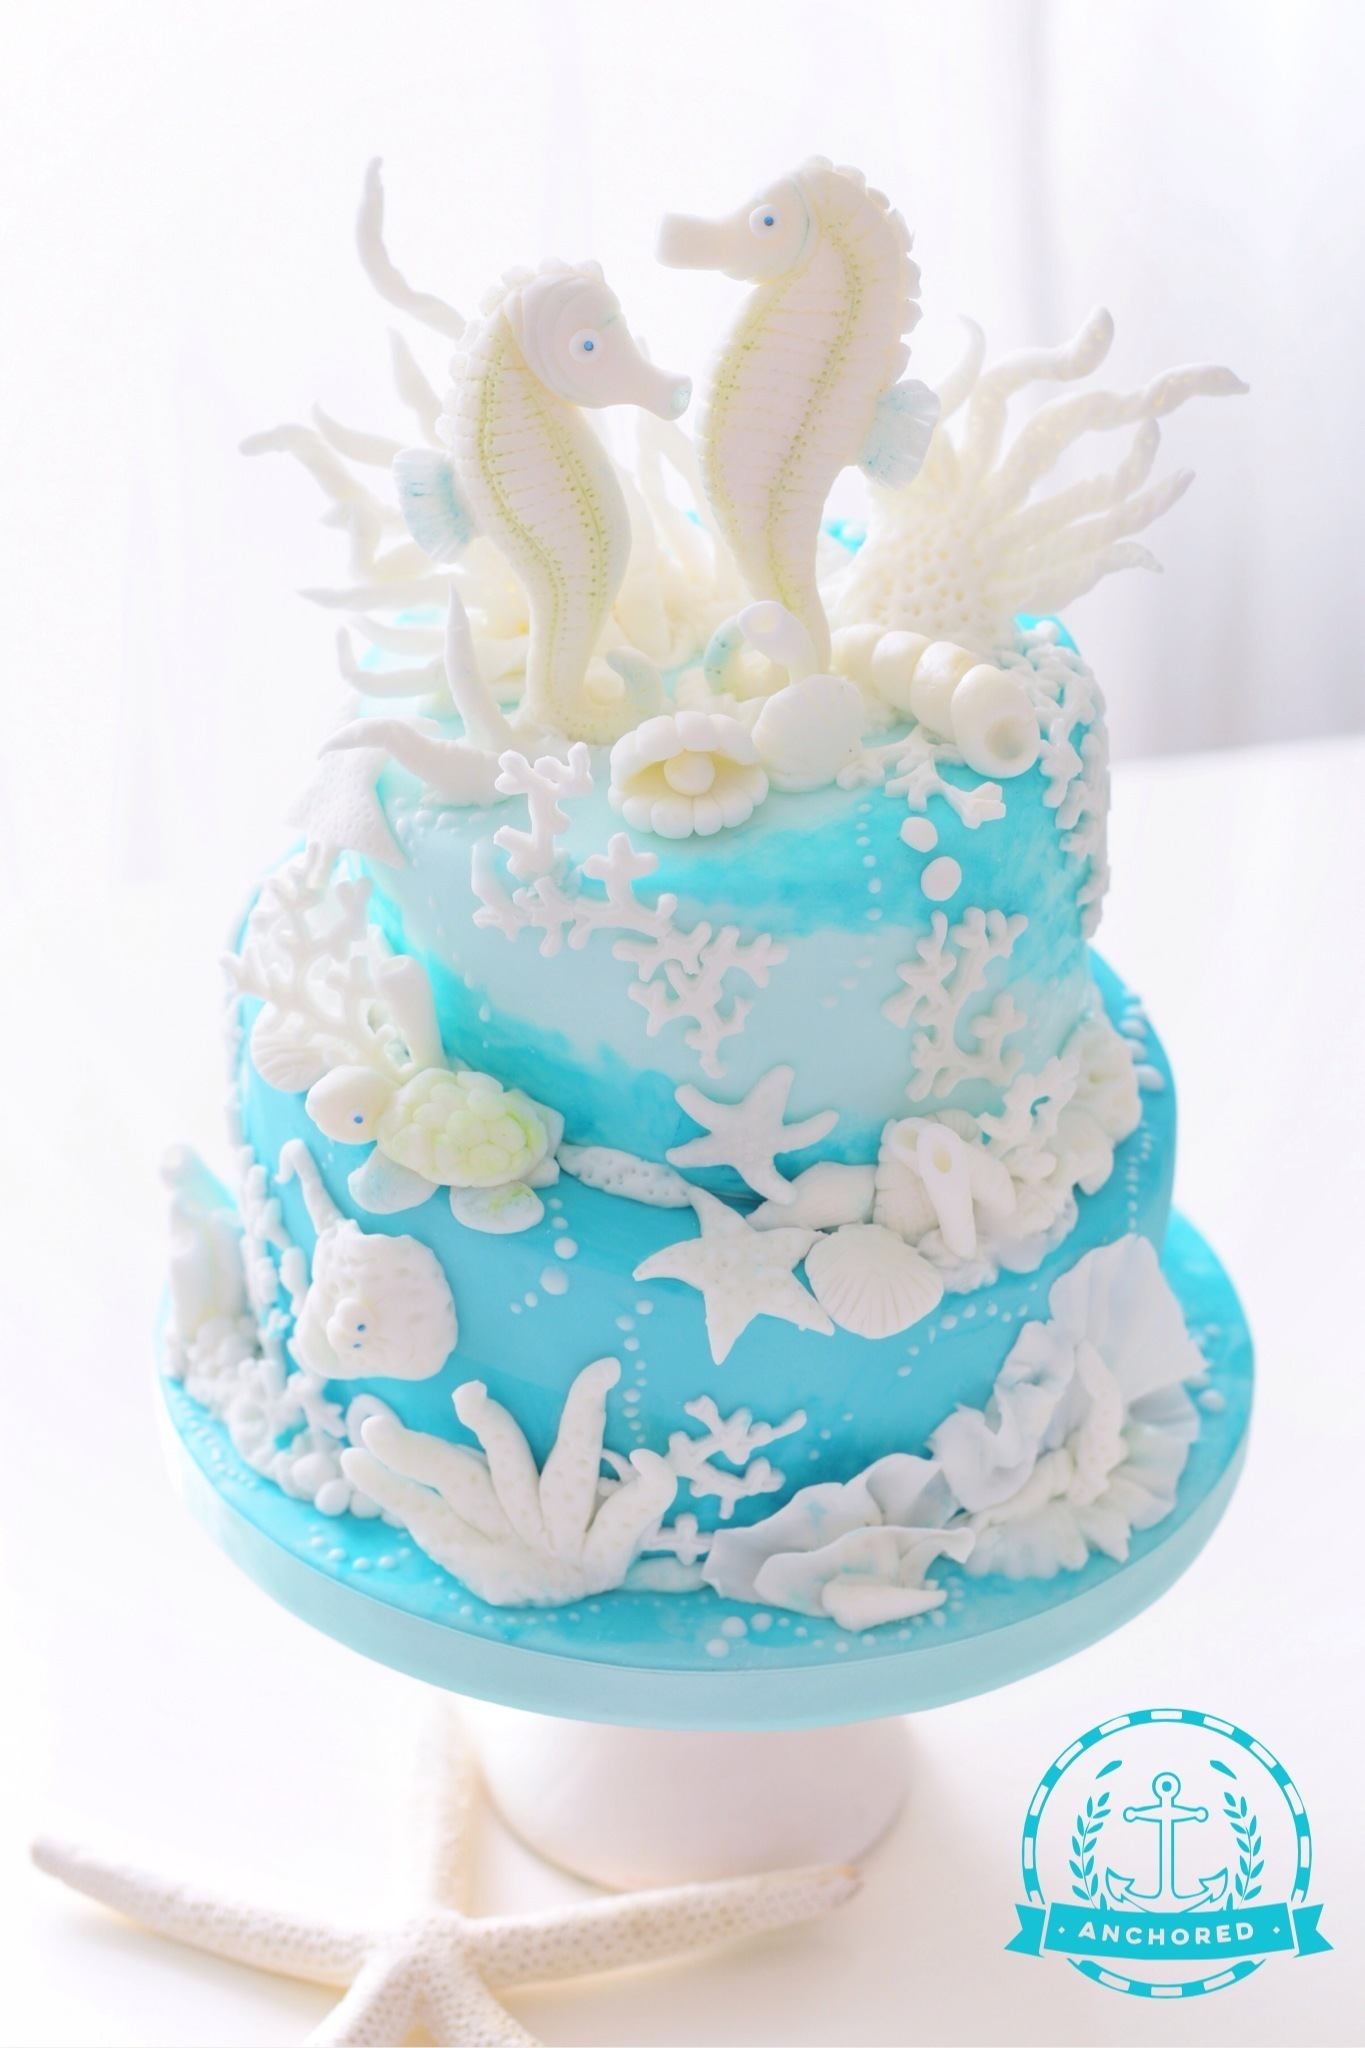 Aquamarine Torte mit Seepferdchen – youtube Video